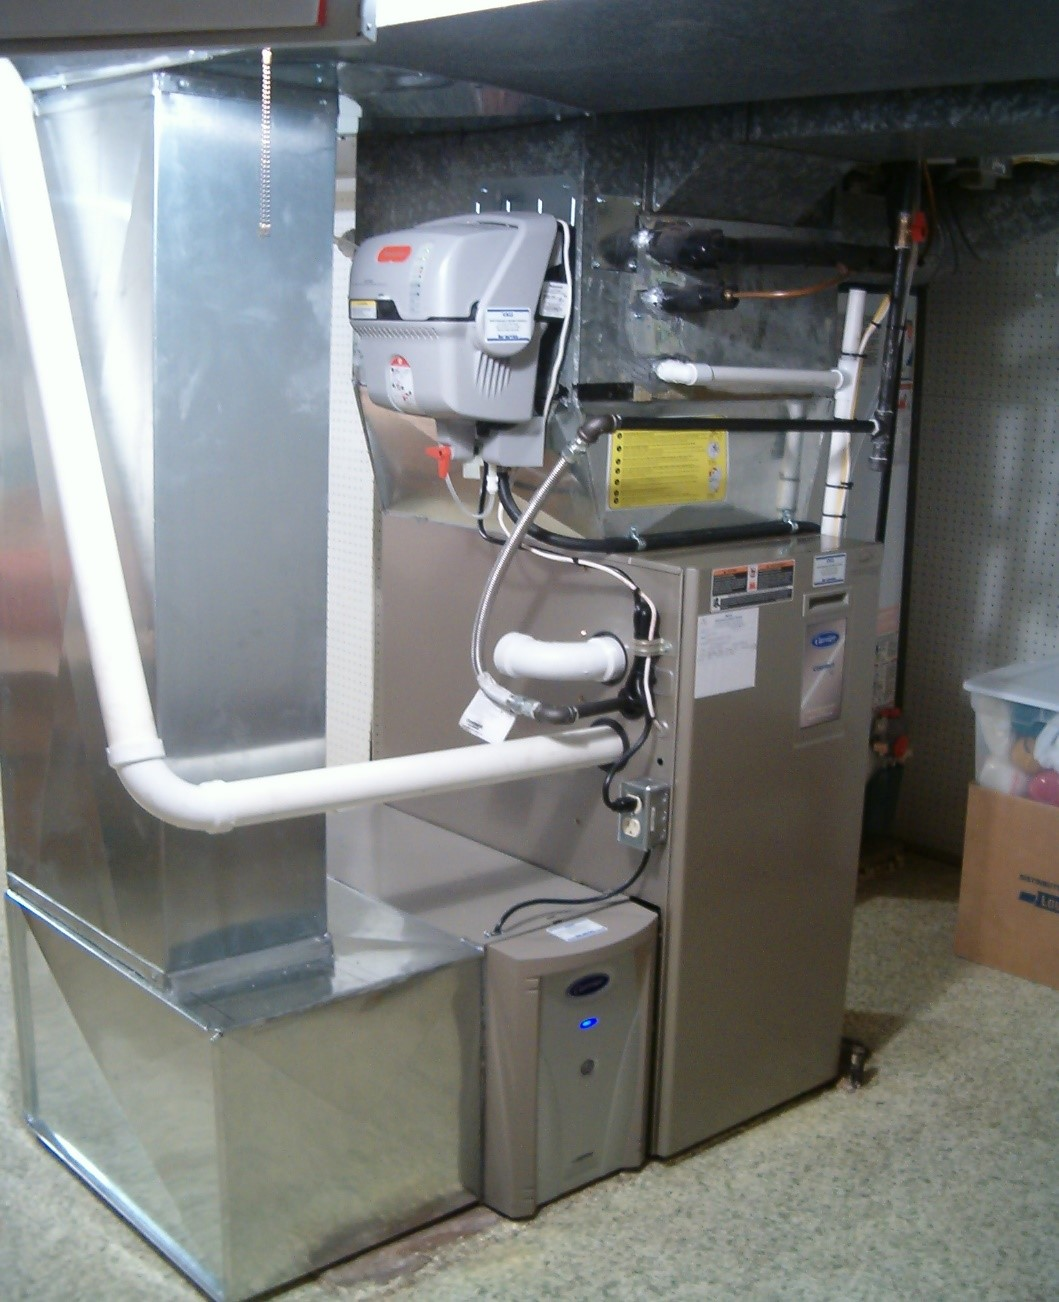 High efficiency furnace install, Humidifier install, electronic air cleaner install New Castle, Indiana